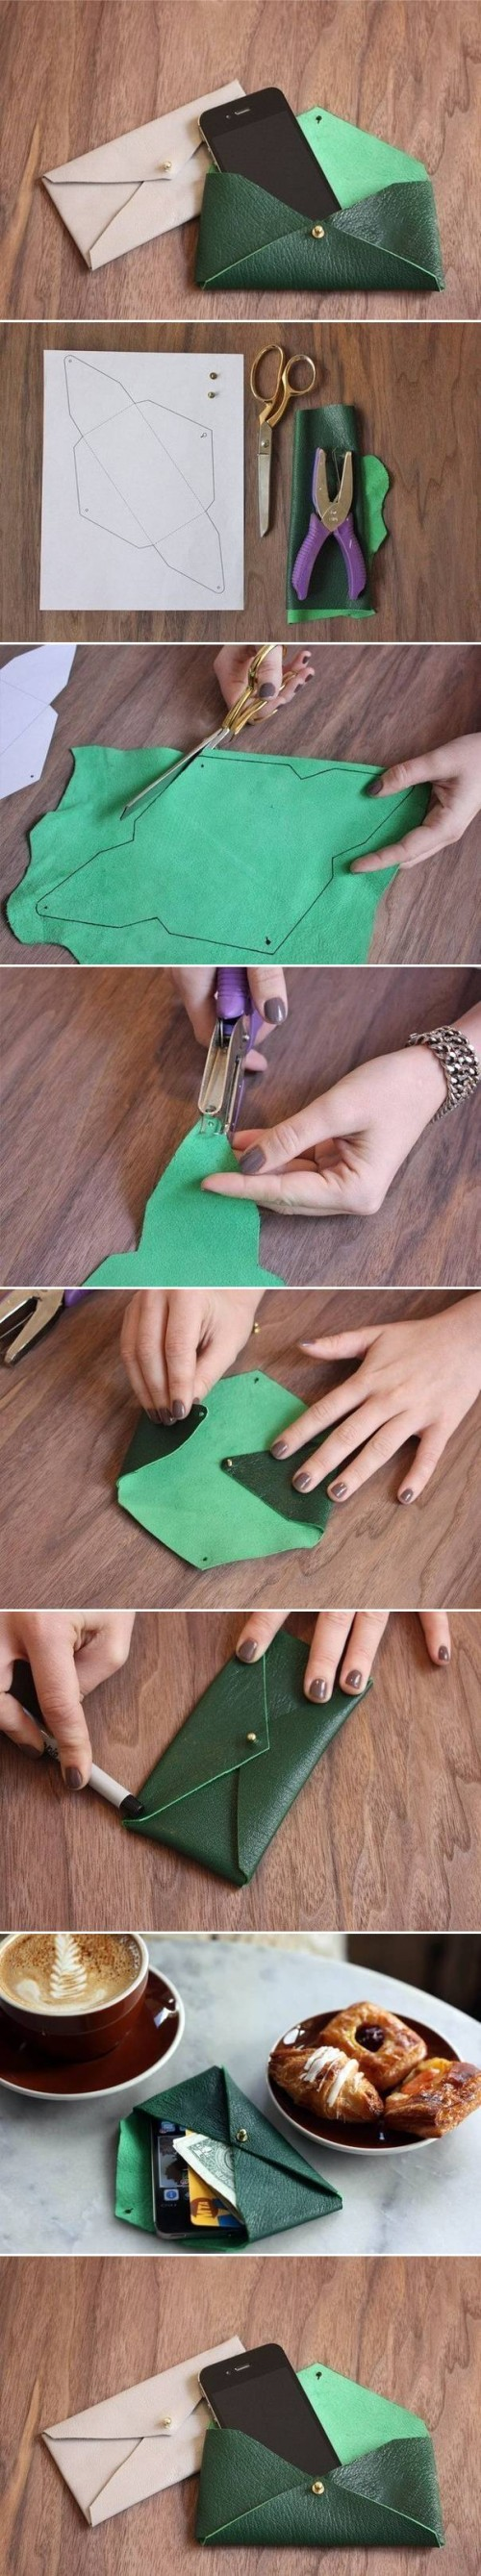 How to make Leather Envelope Case step by step DIY tutorial instructions